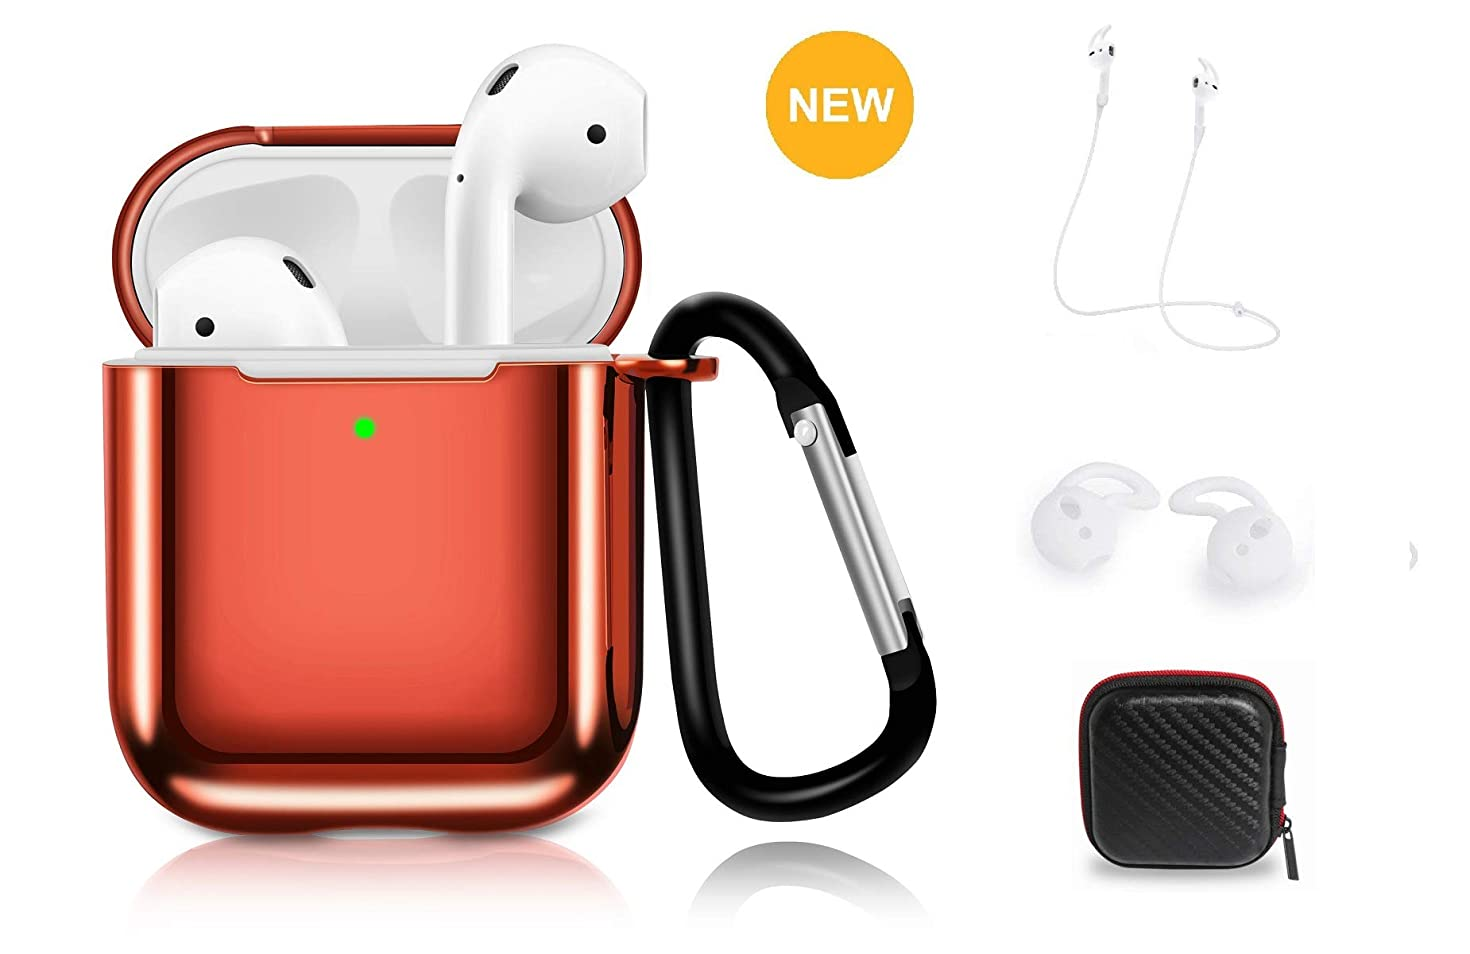 AirPods Case Cover, Taosings 360° Protective TPU AirPods Skin Accessories Kit Cover Compatible with AirPods 1 2 Charging Case with Carabiner+Strap+Earhooks+Storage Box[Support Wireless Charging]